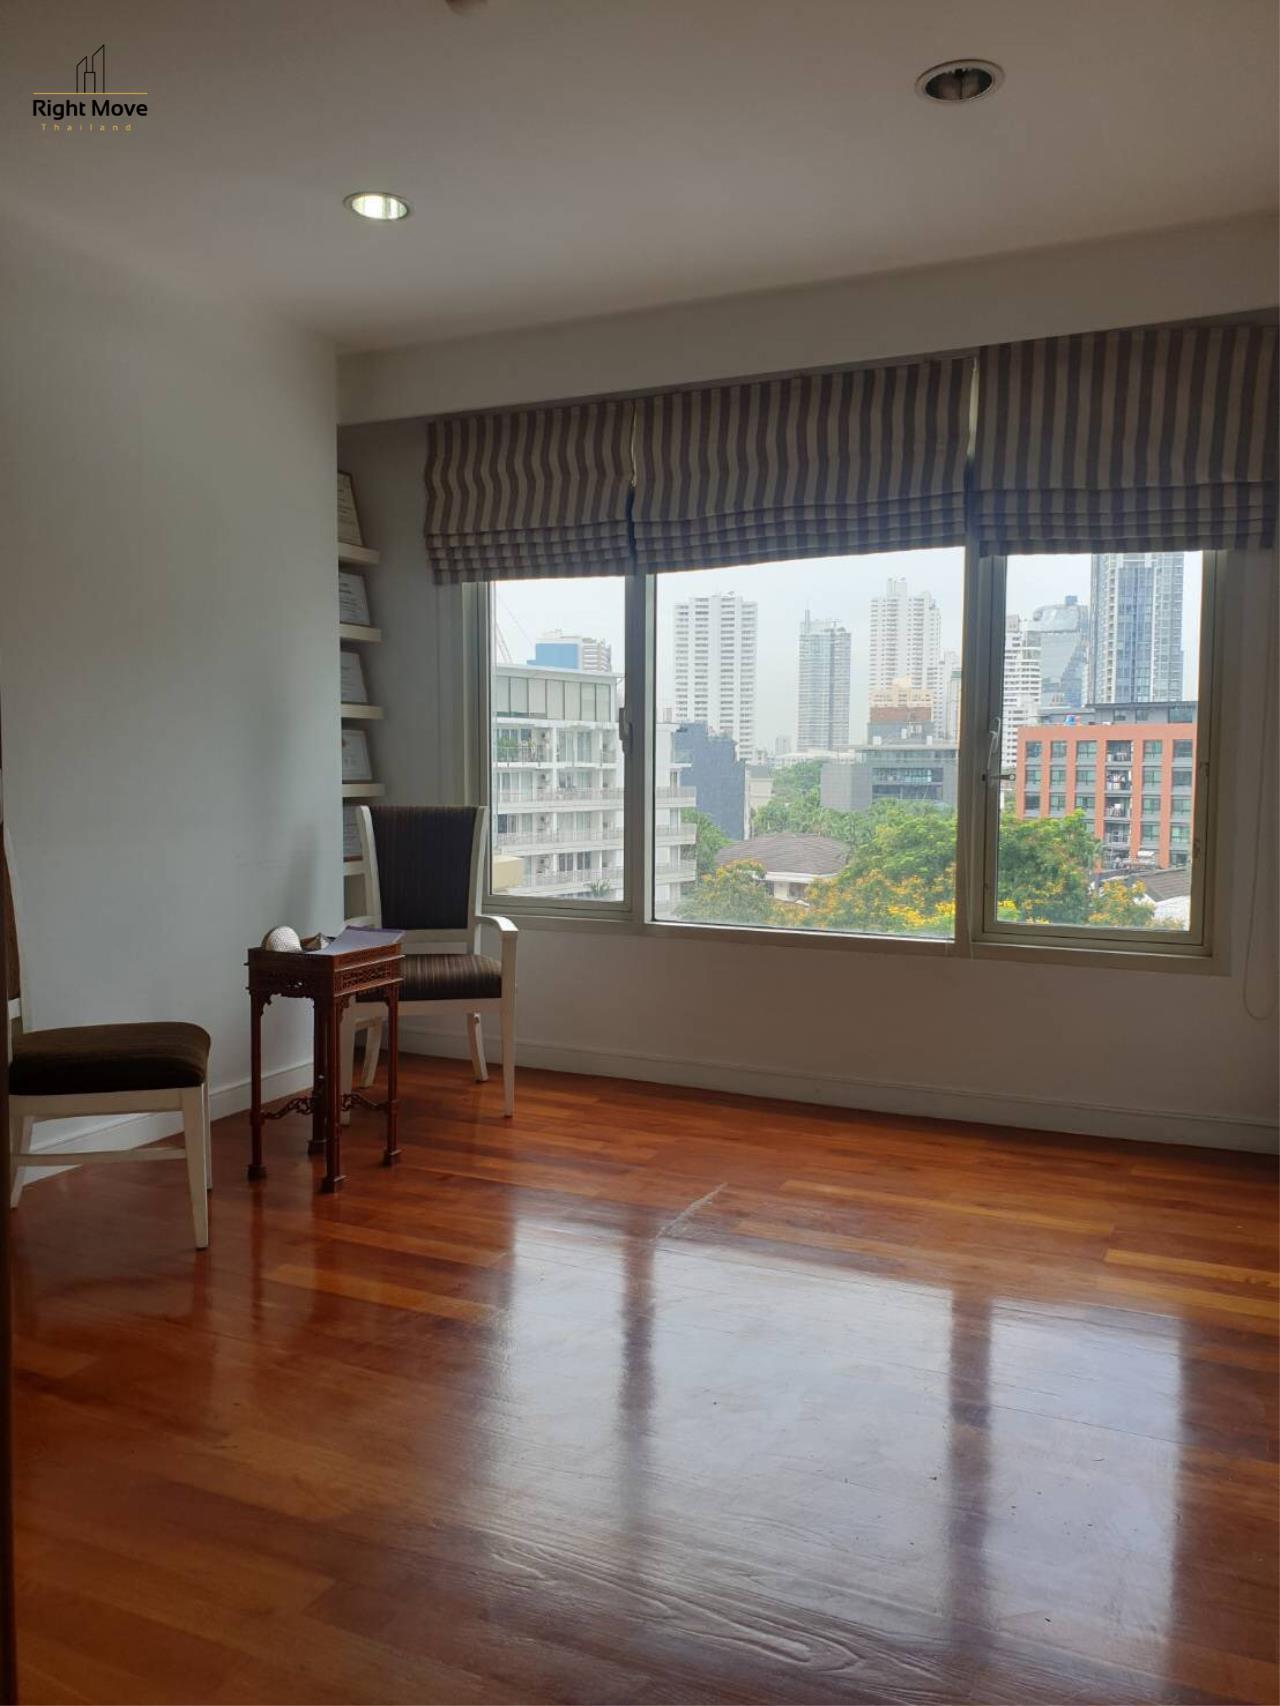 Right Move Thailand Agency's CA3456 Hampton For  Rent 130,000 THB Sale  26,000,000 THB THB 4 Bedrooms 232 Sqm 4